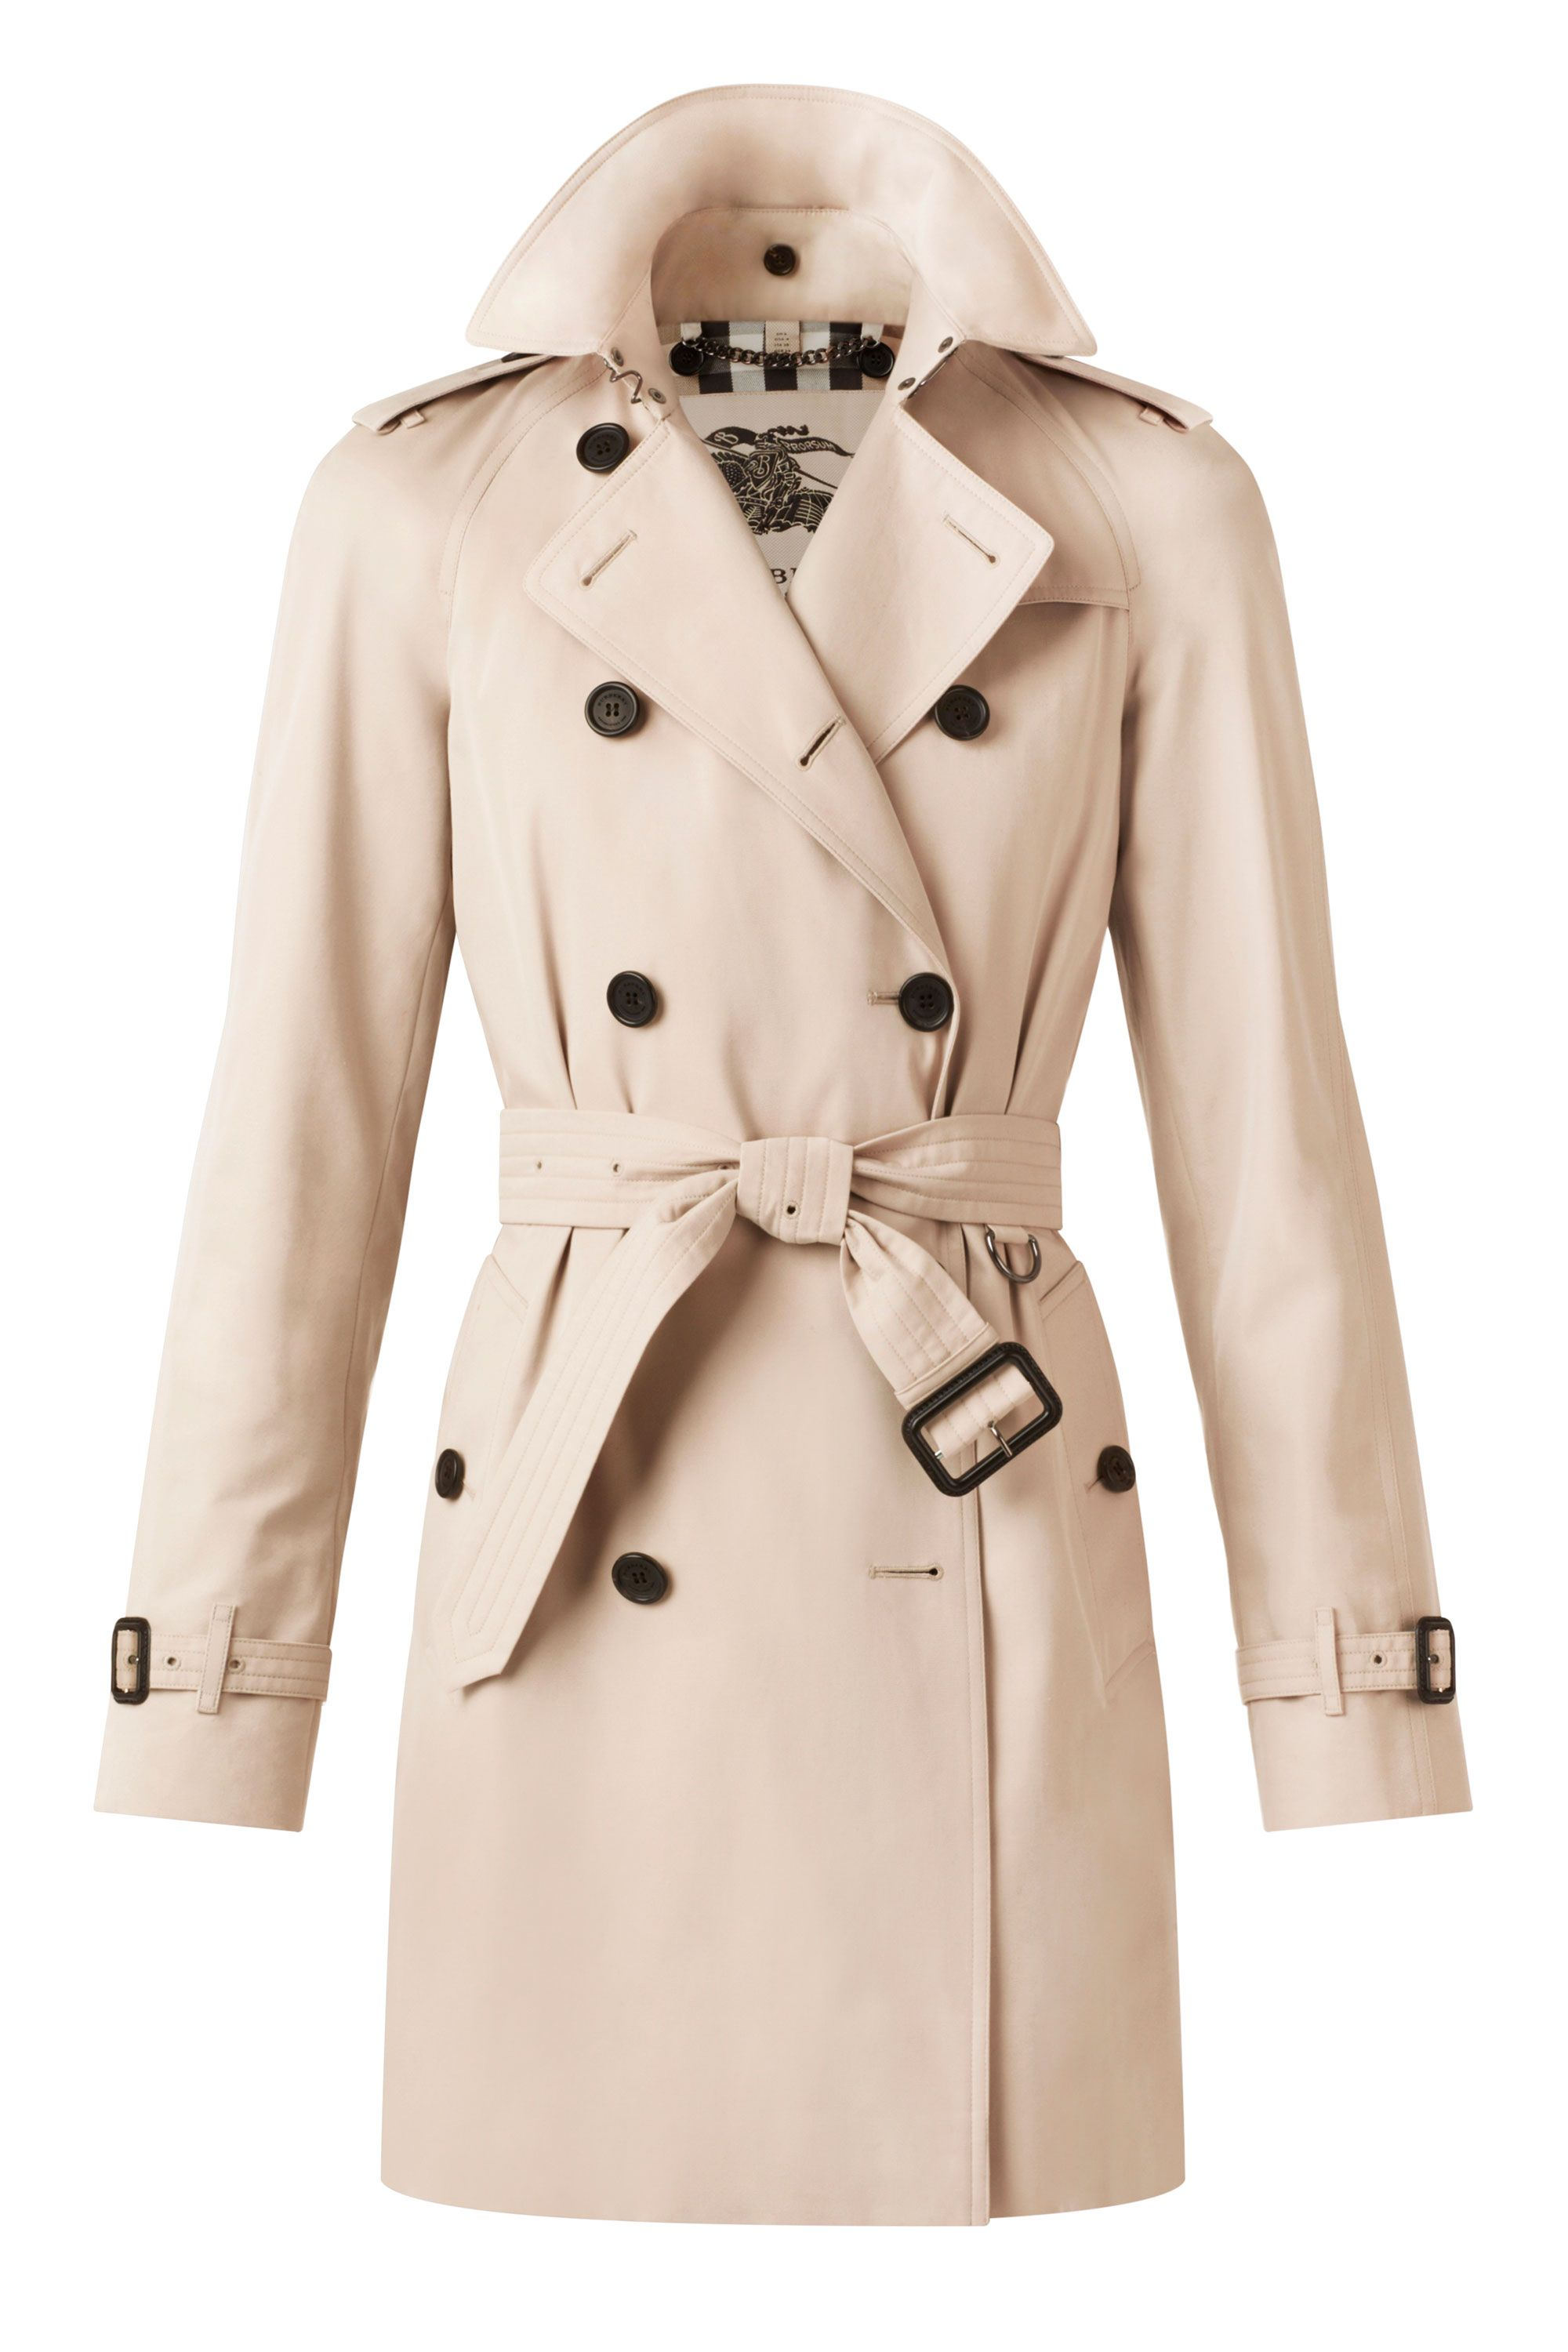 "A heritage brand that pushes the meaning further, Burberry's original trench continues as the leader of the pack.  <em>Burberry trench coat, $1,695, <a href=""http://us.burberry.com/the-westminster-long-heritage-trench-coat-p39008451"" target=""_blank"">burberry.com</a>.</em>"